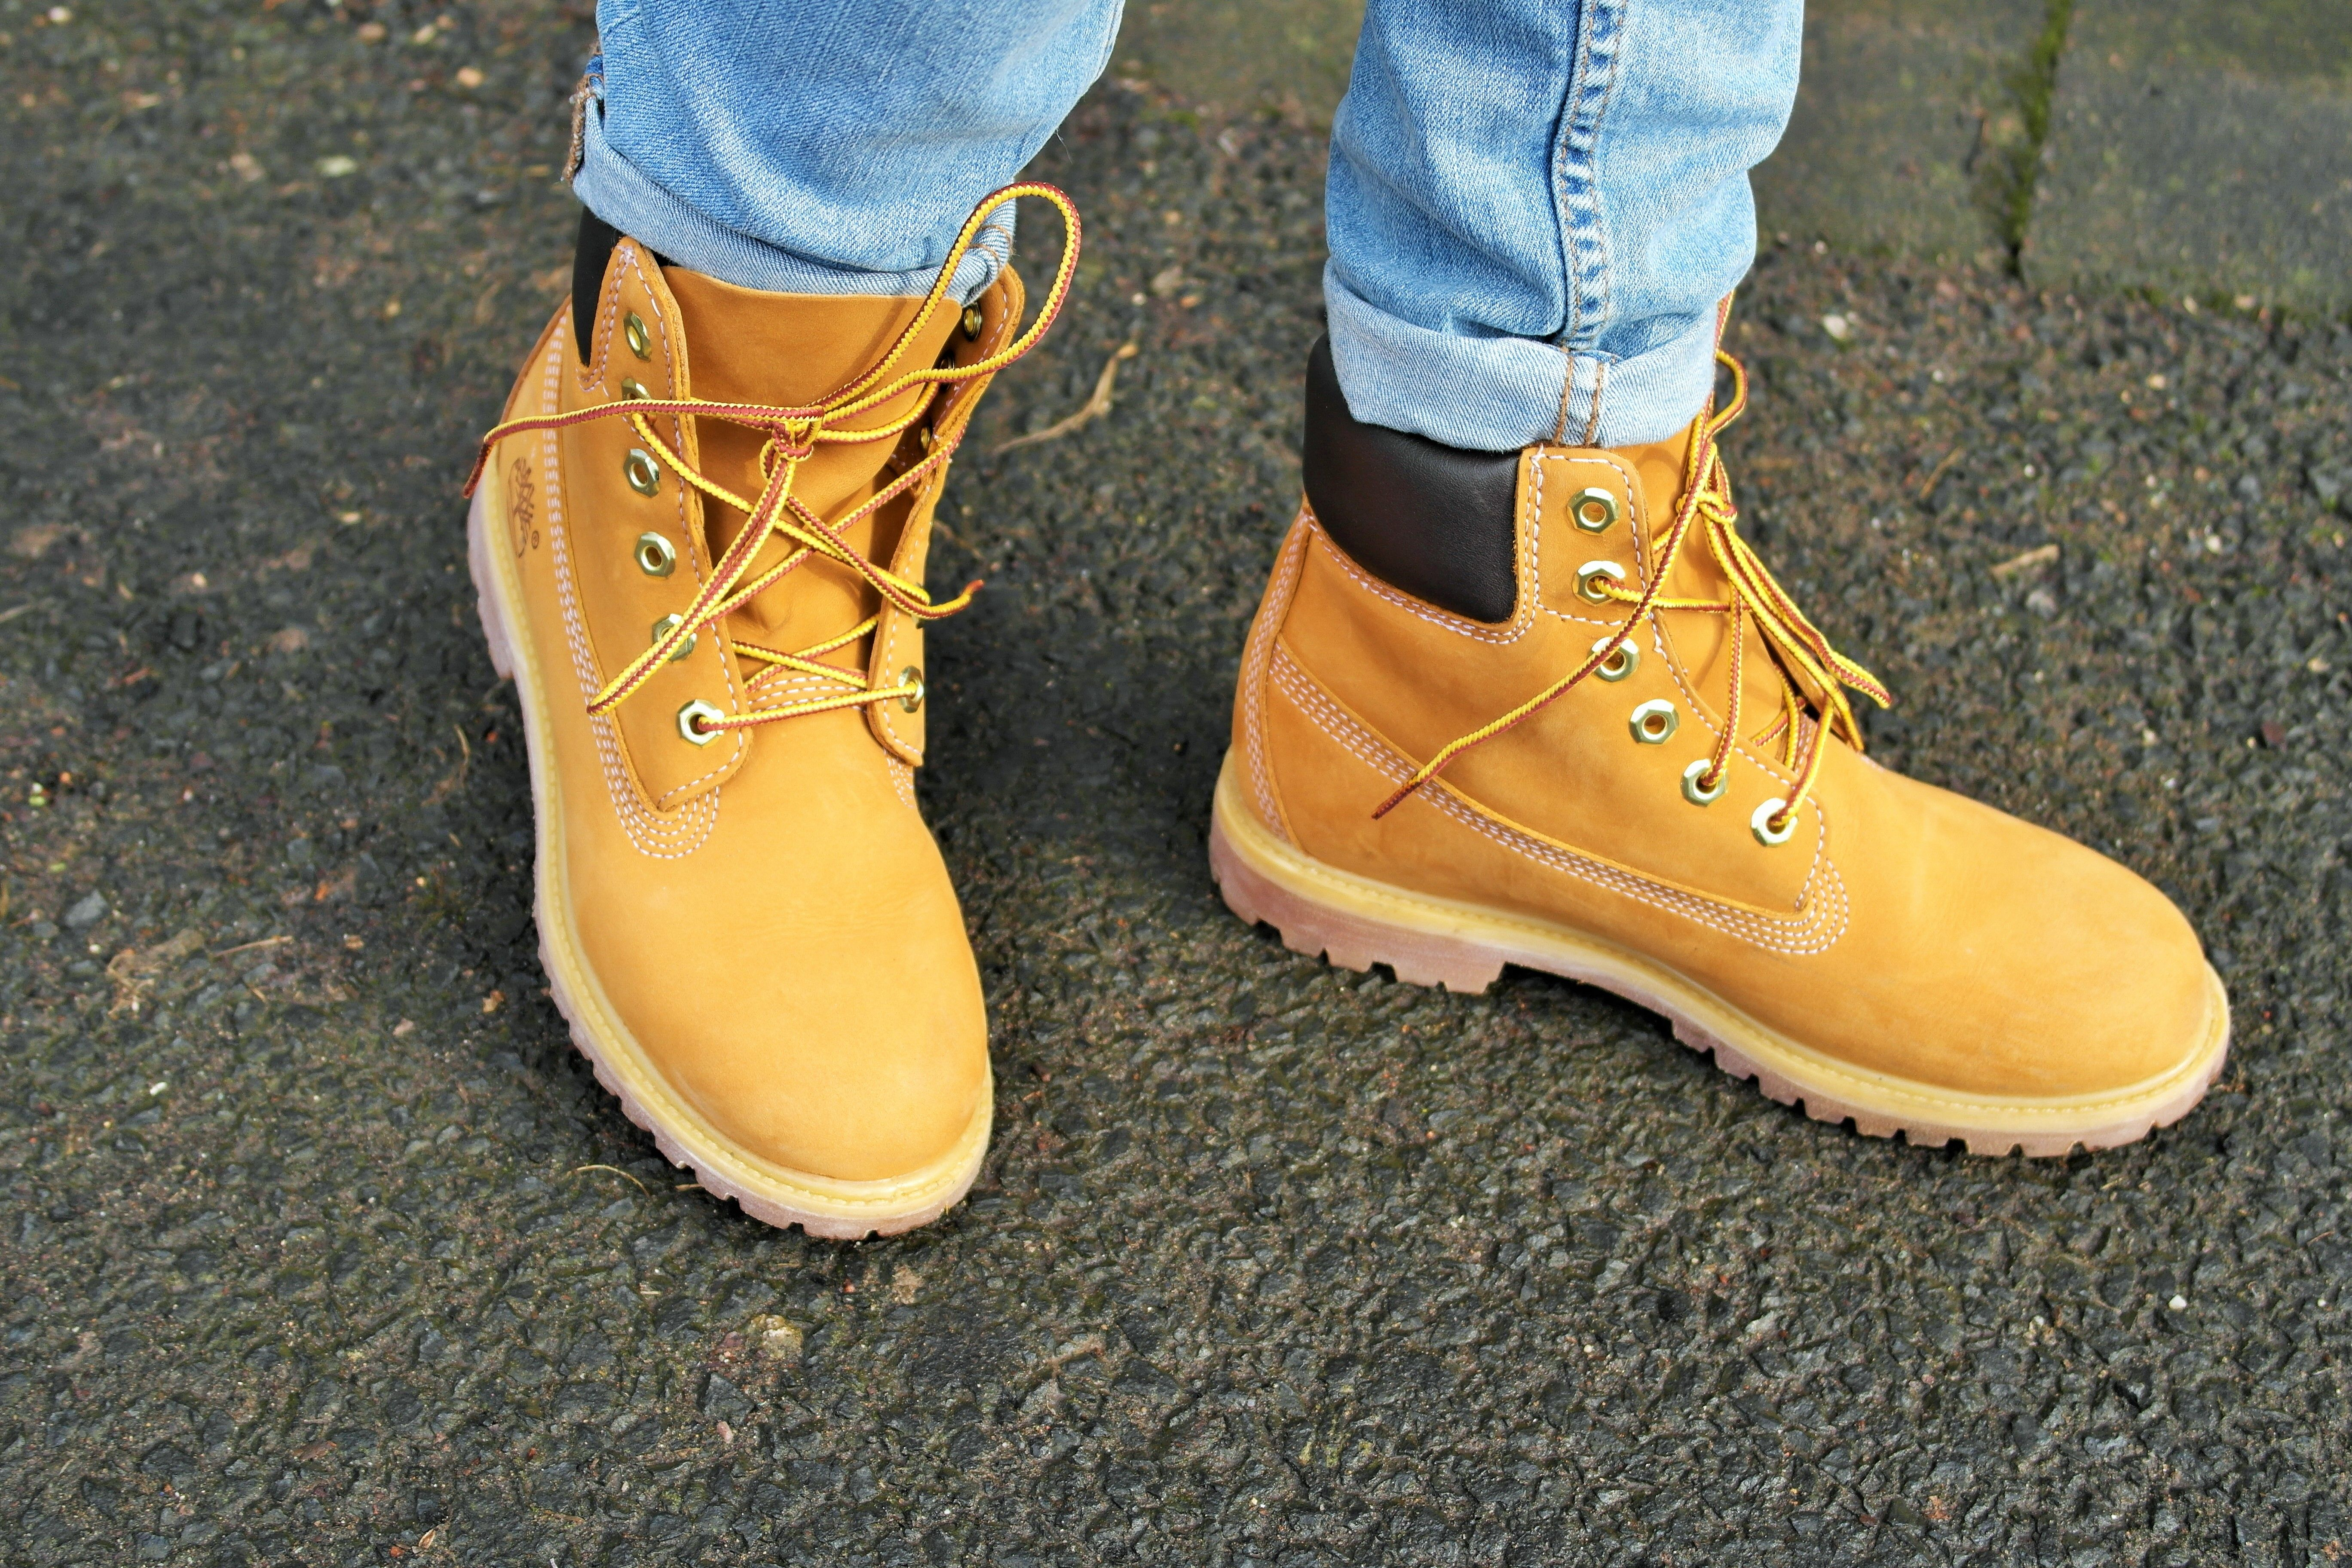 Timberlands shoes, Girlfriend jeans